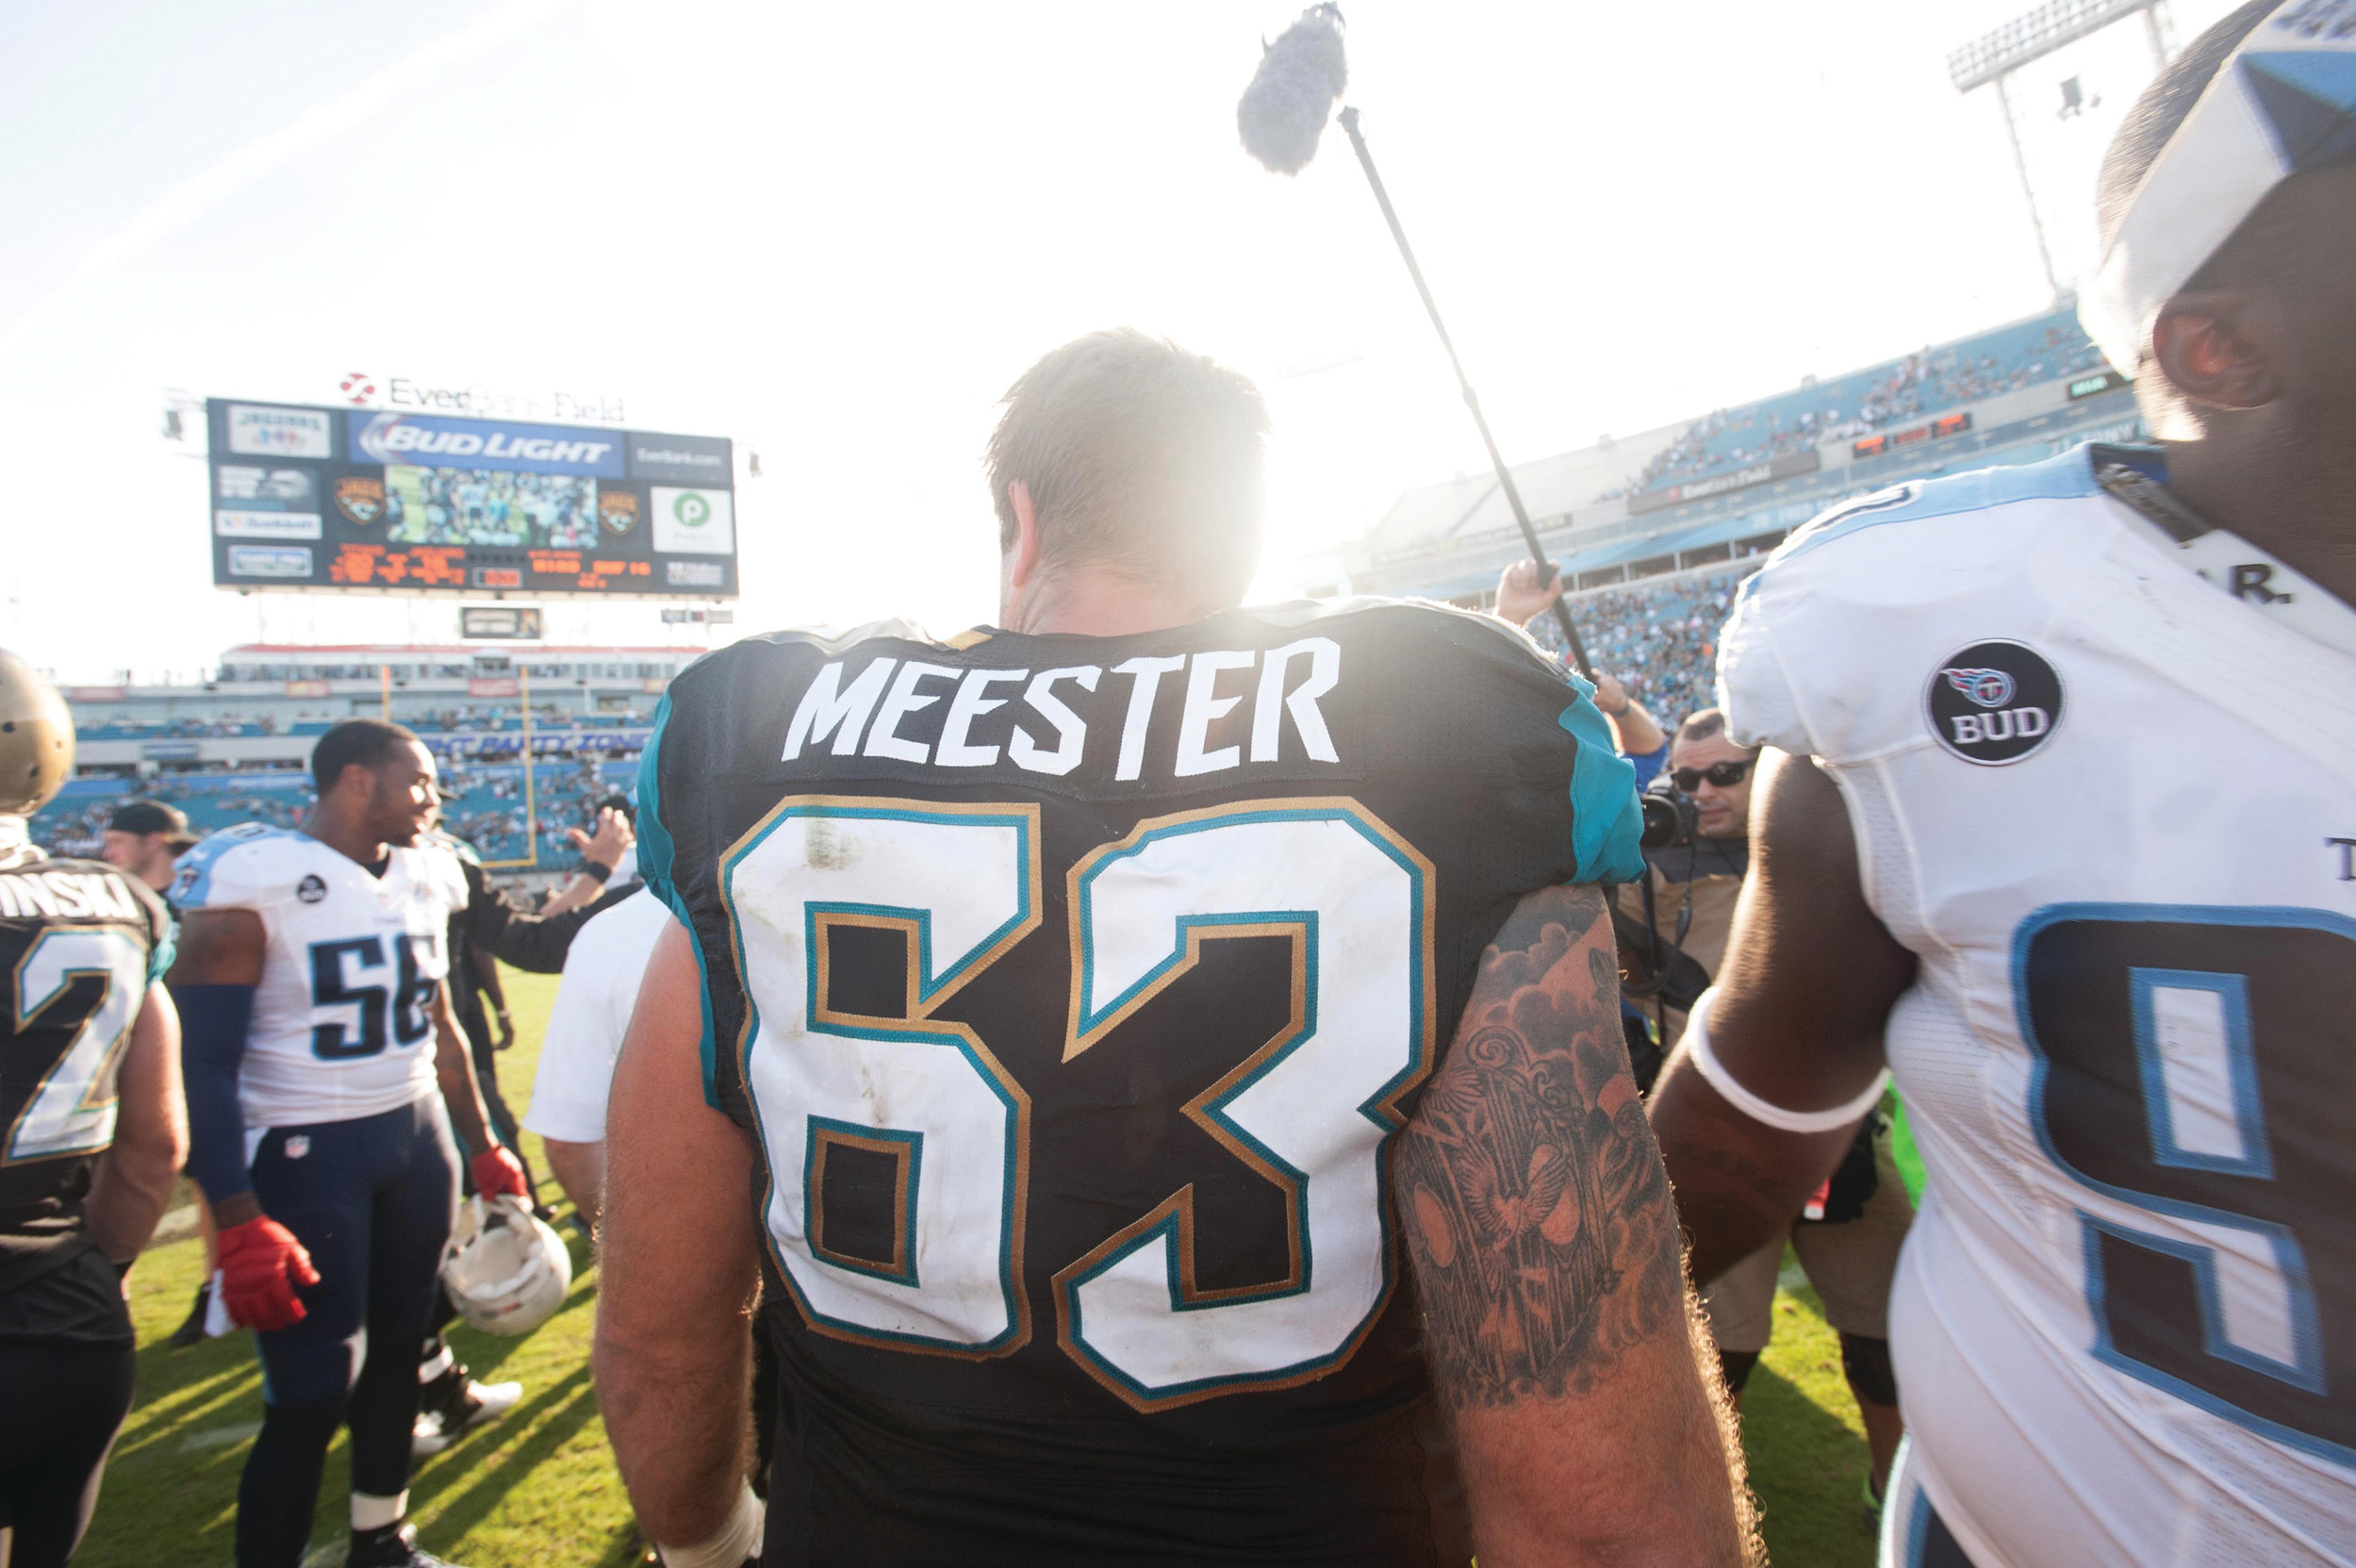 A HERO'S GOOD-BYE: The Jaguars feted Brad Meester, their longtime thoroughly mediocre center at his last home game, Dec. 22.